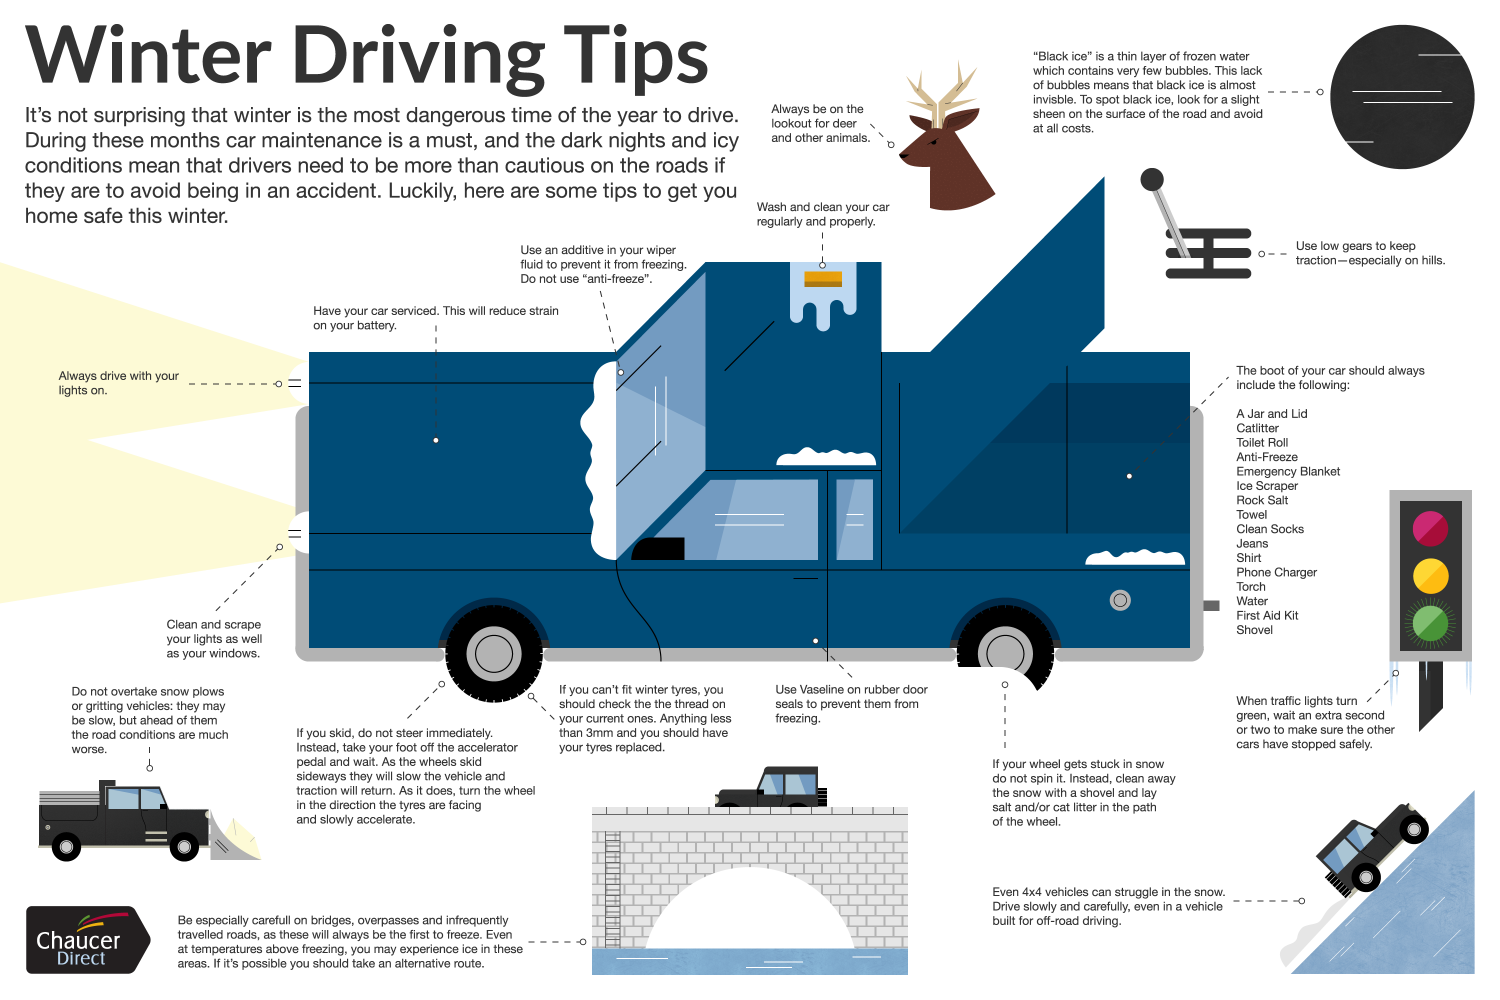 Winter Driving Tips Infographic